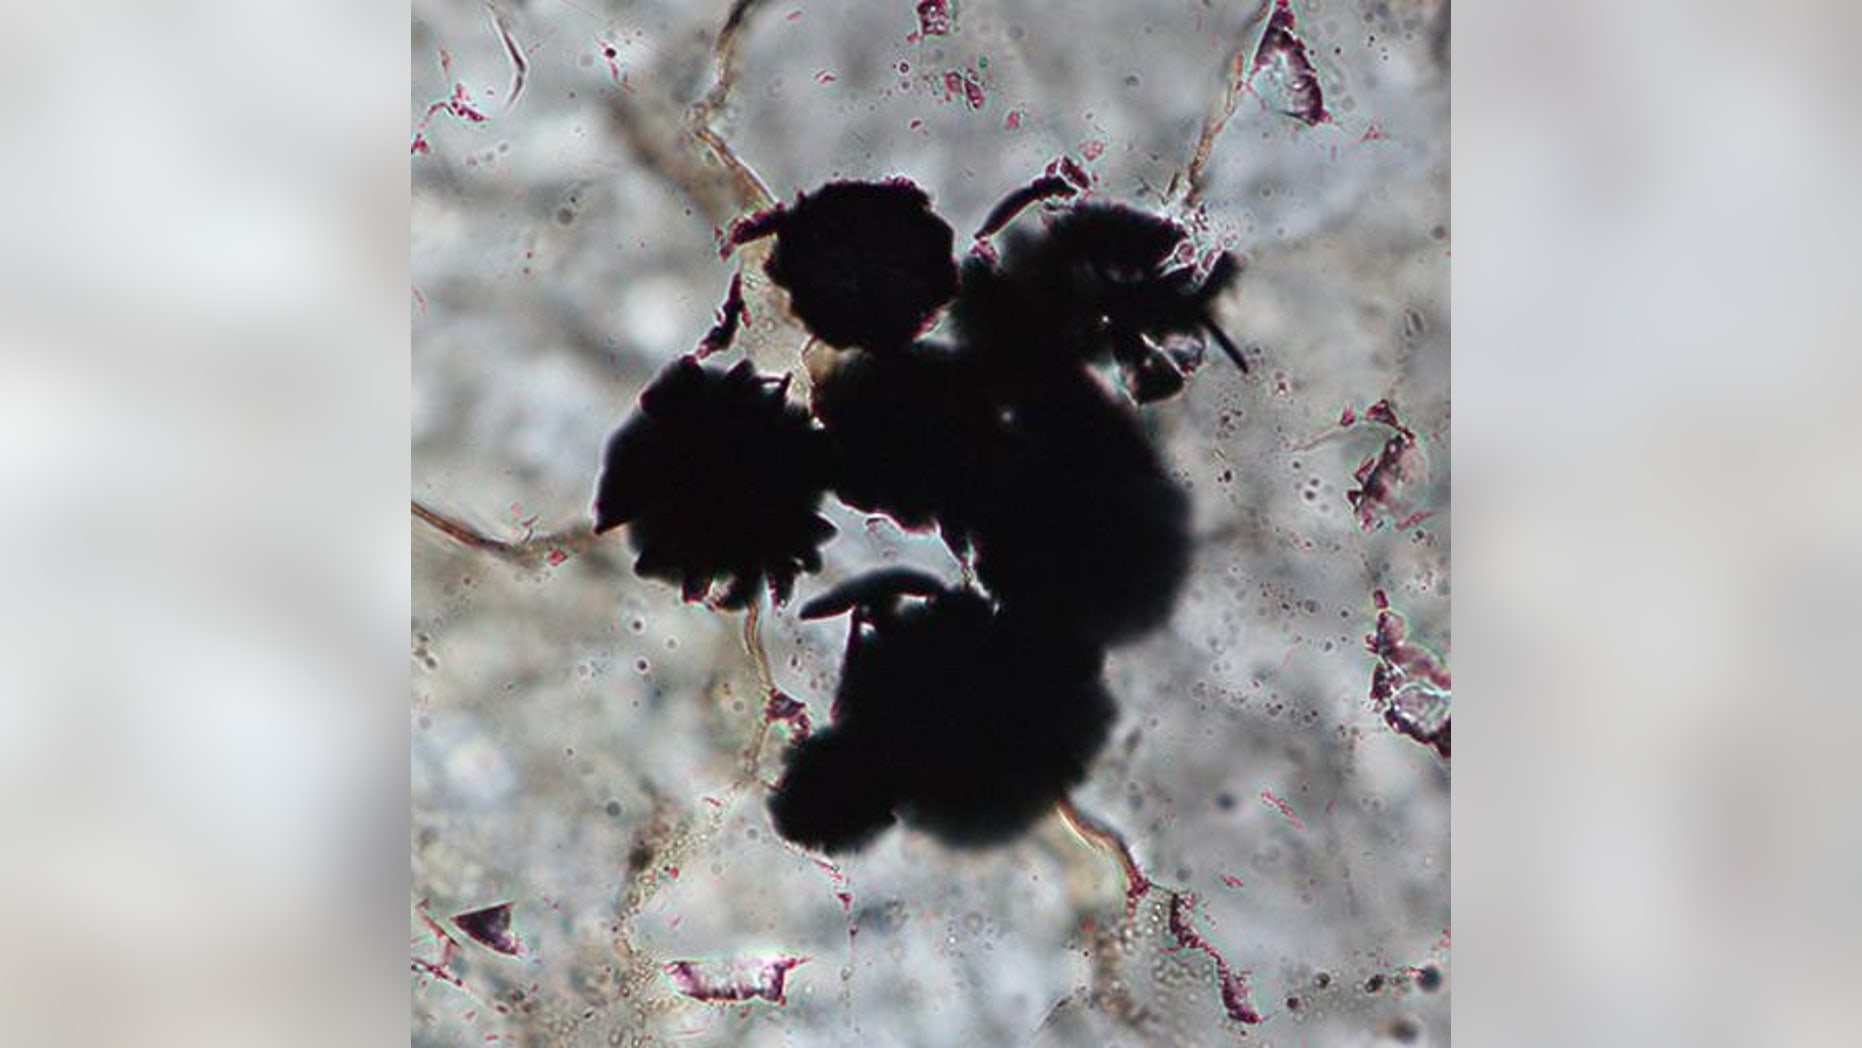 Graphite in 3.95-billion-year-old rocks from Labrador, Canada, may be the oldest evidence of life on Earth.